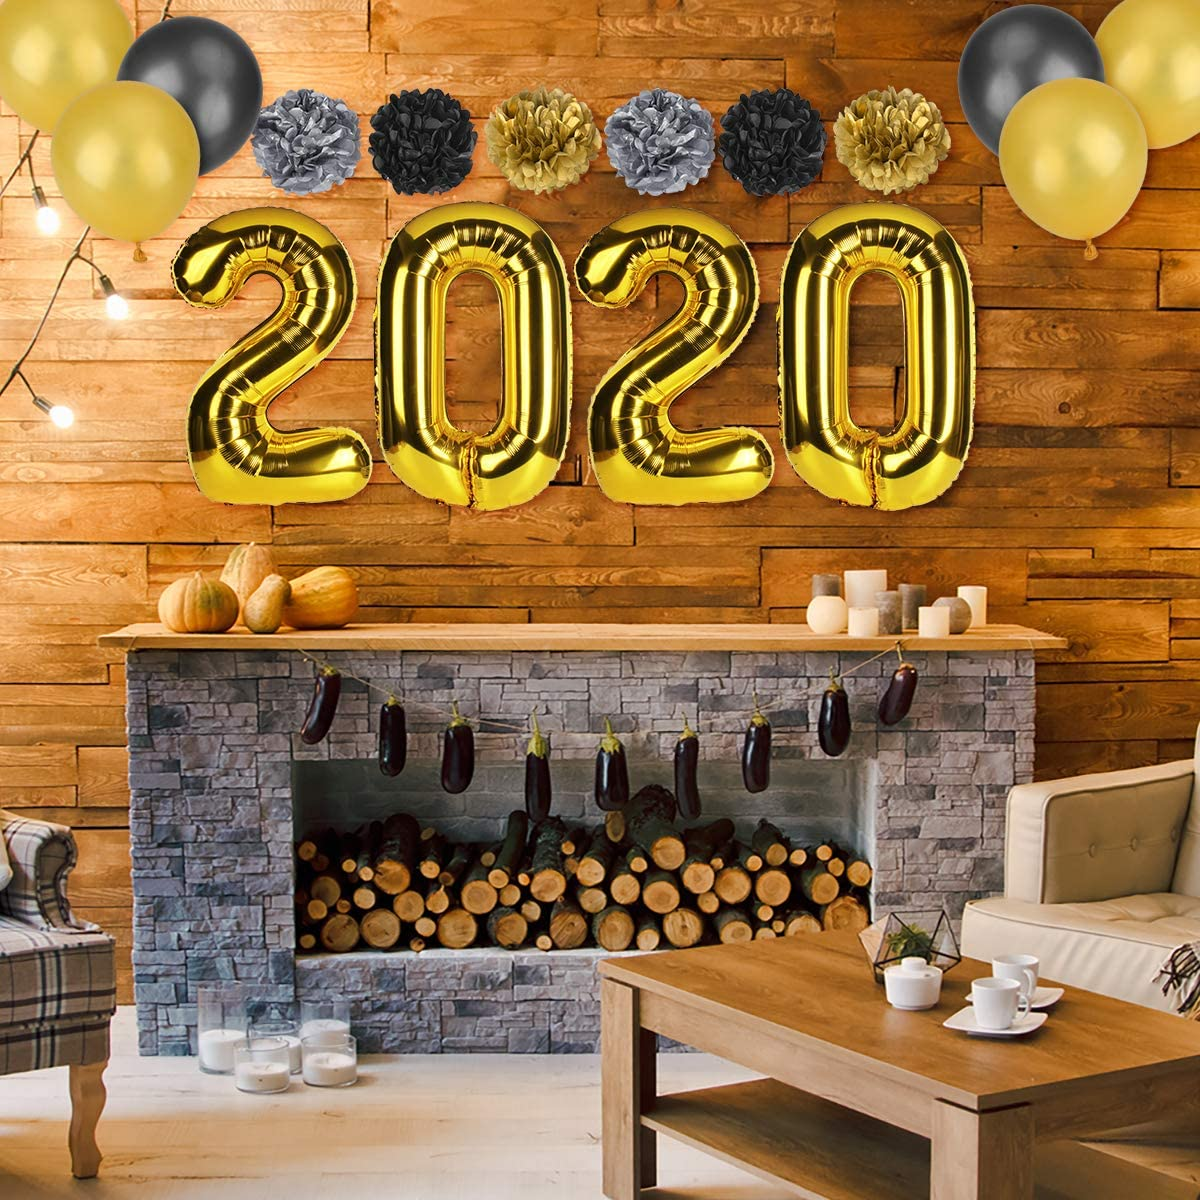 Home Decorations 2020 Balloons 2020 New Years Decorations Kit Gold White And Black Balloons Sets Paper